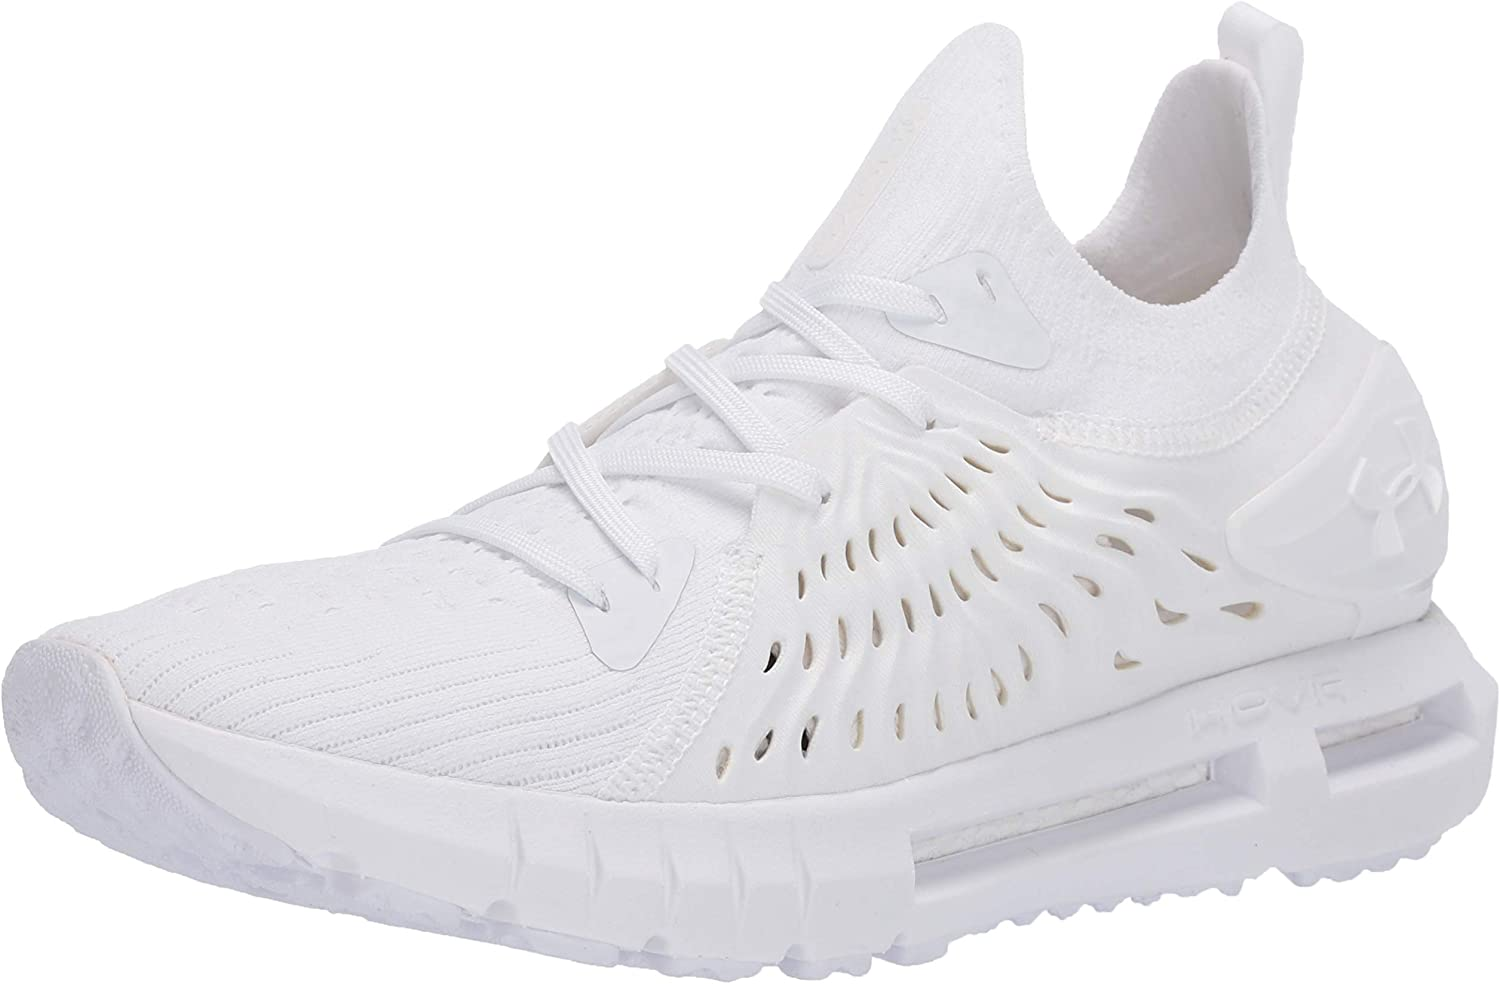 Under Armour HOVR Phantom RN, Zapatillas para Correr para Mujer, Blanco 101 Blanco, 39 EU: Amazon.es: Zapatos y complementos